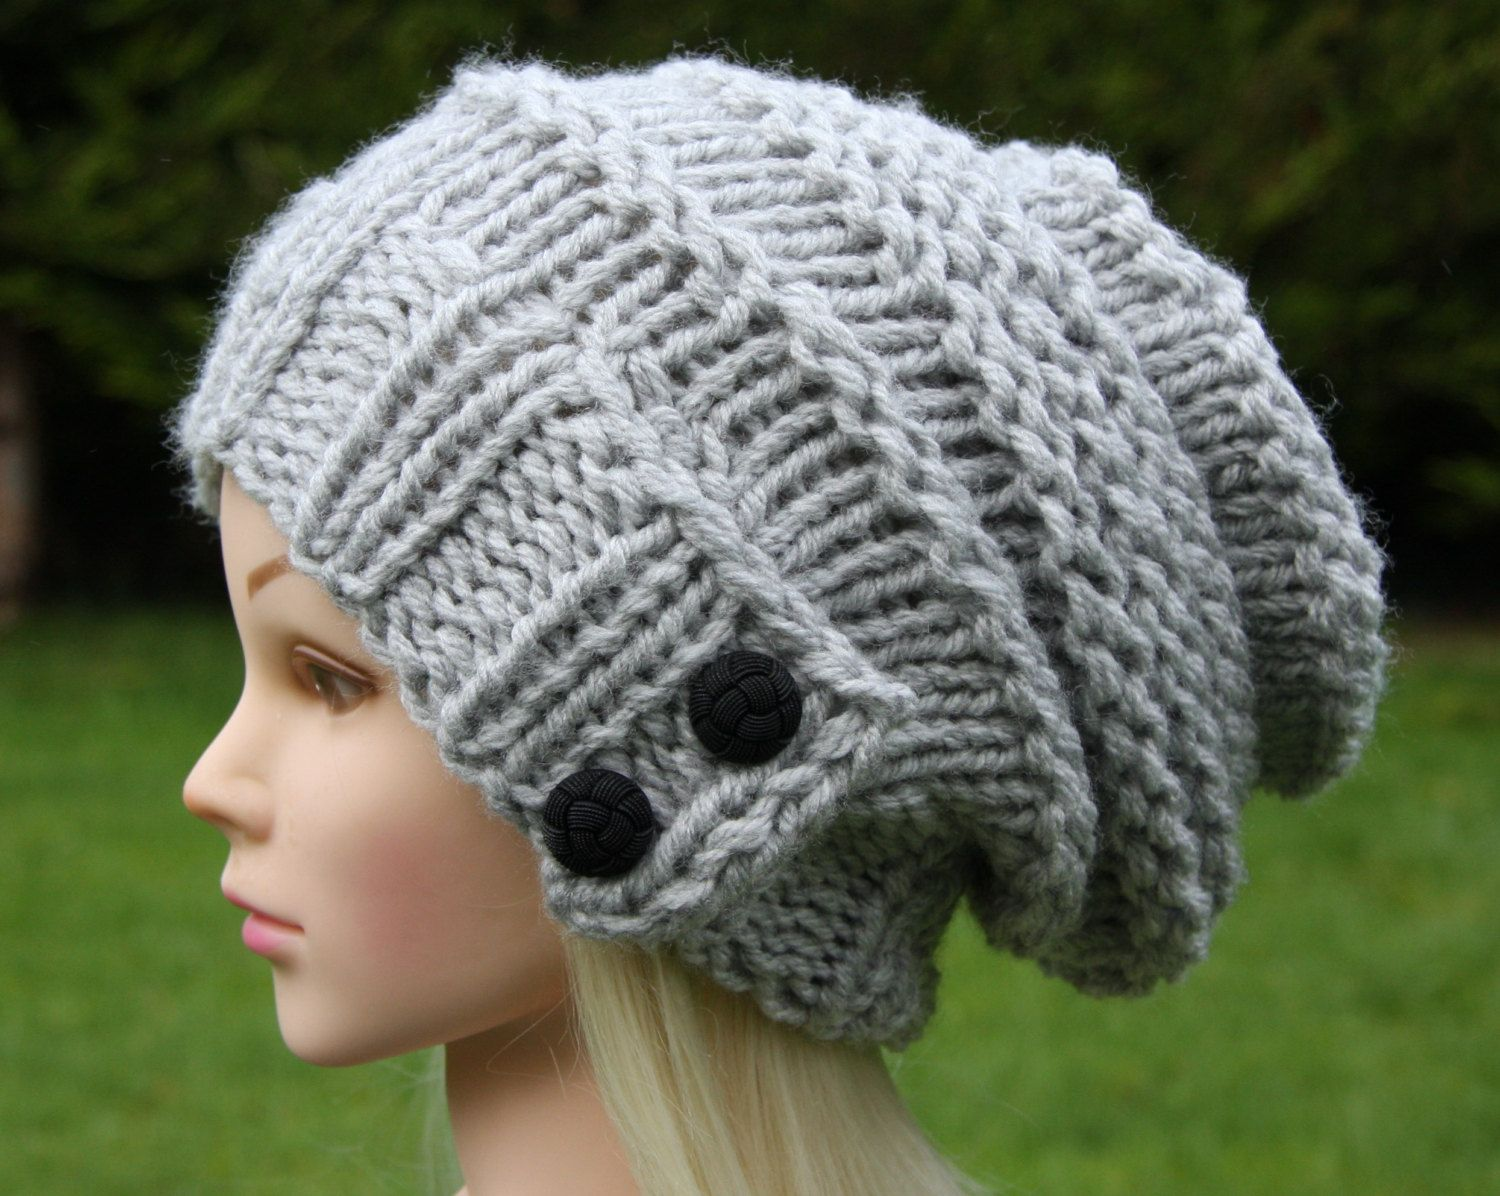 ebaab0e6028 Hand Knit Hat Women s hat- beanie- slouchy hat with two black buttons-  winter